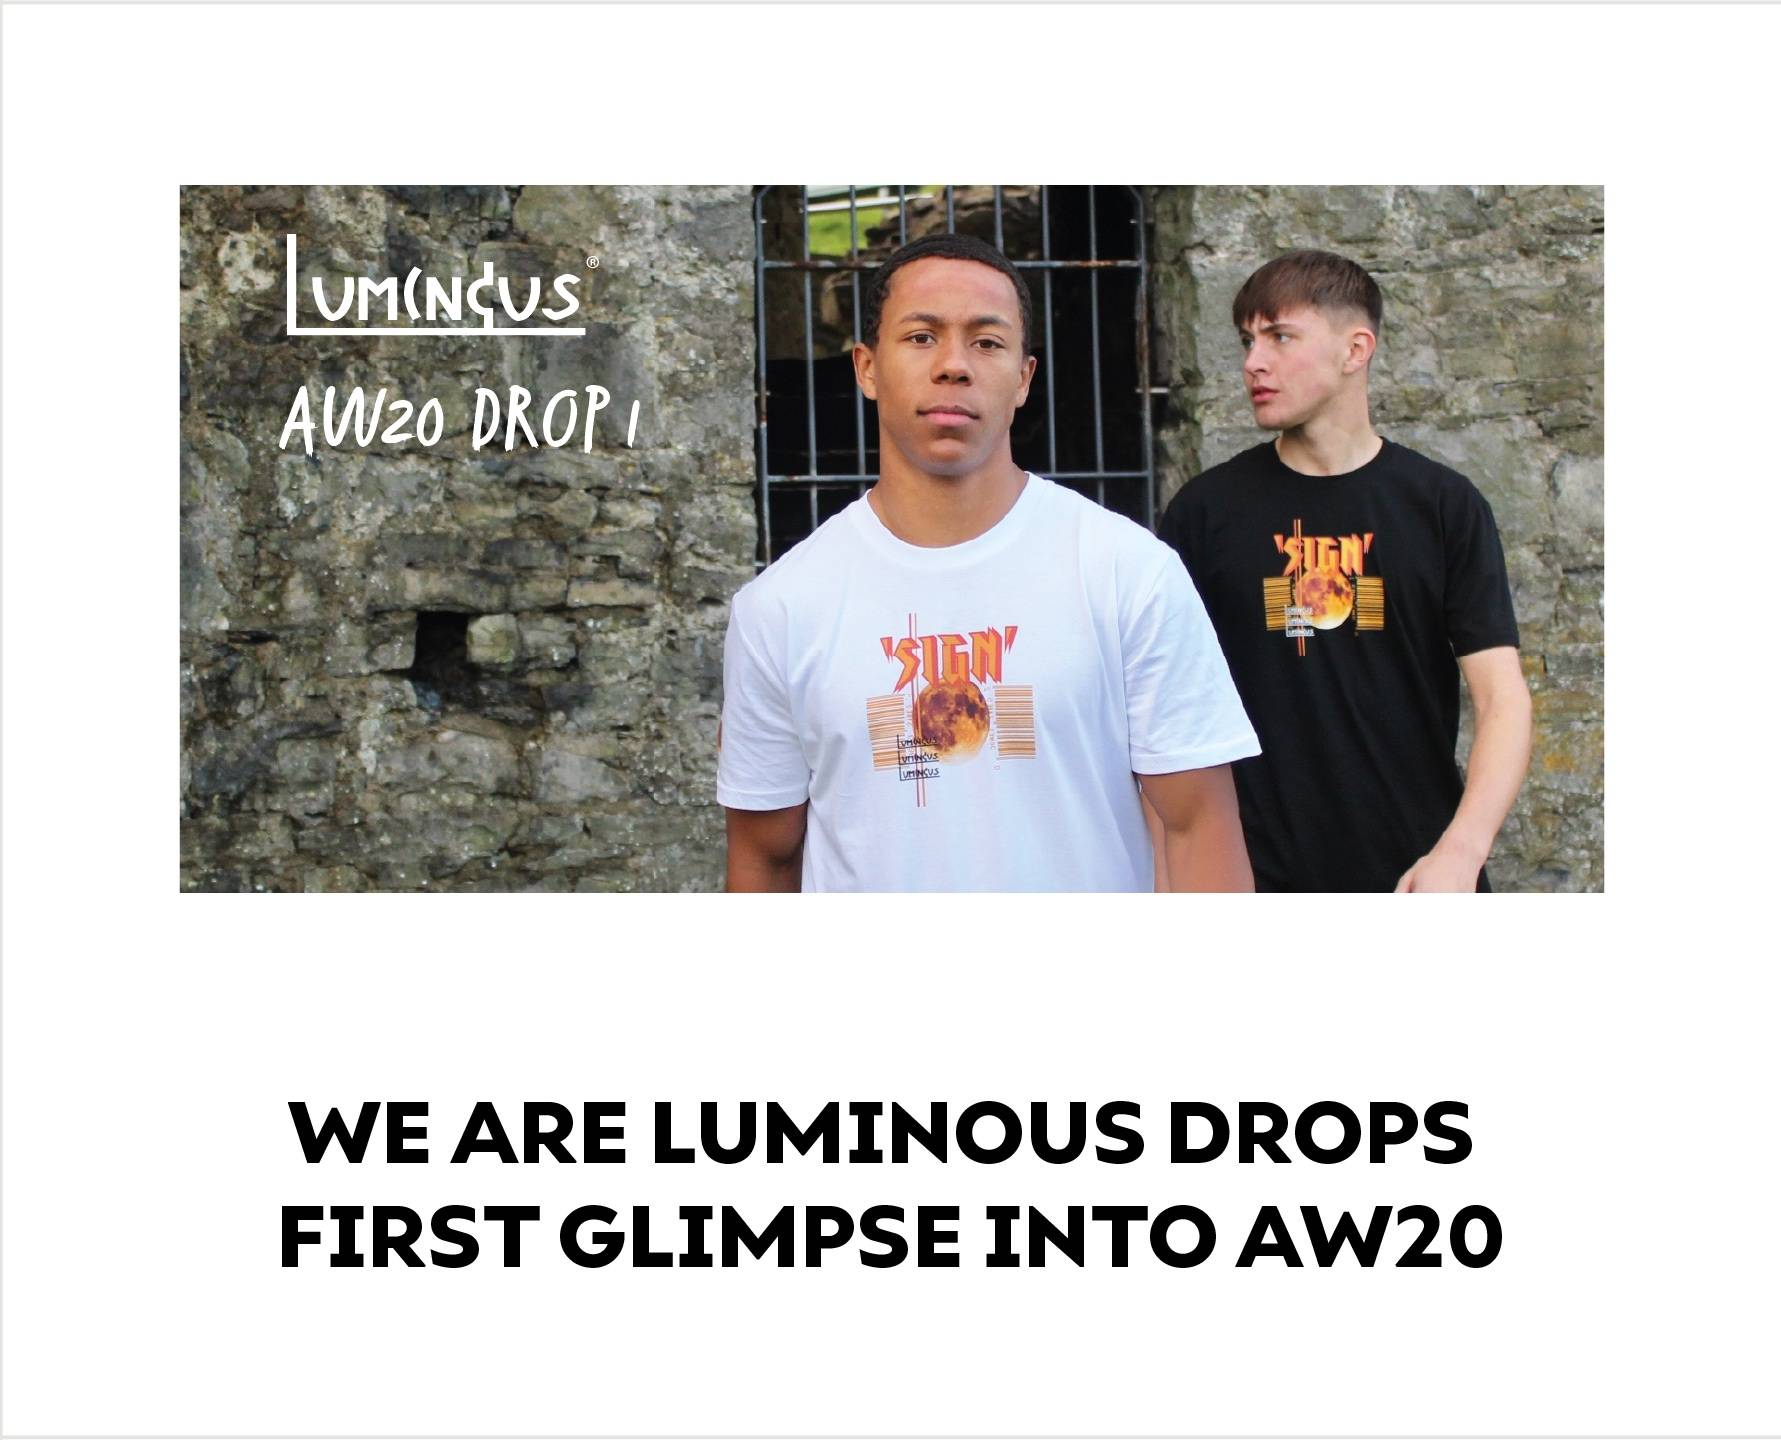 We Are Luminous Drops First Glimpse Into AW20